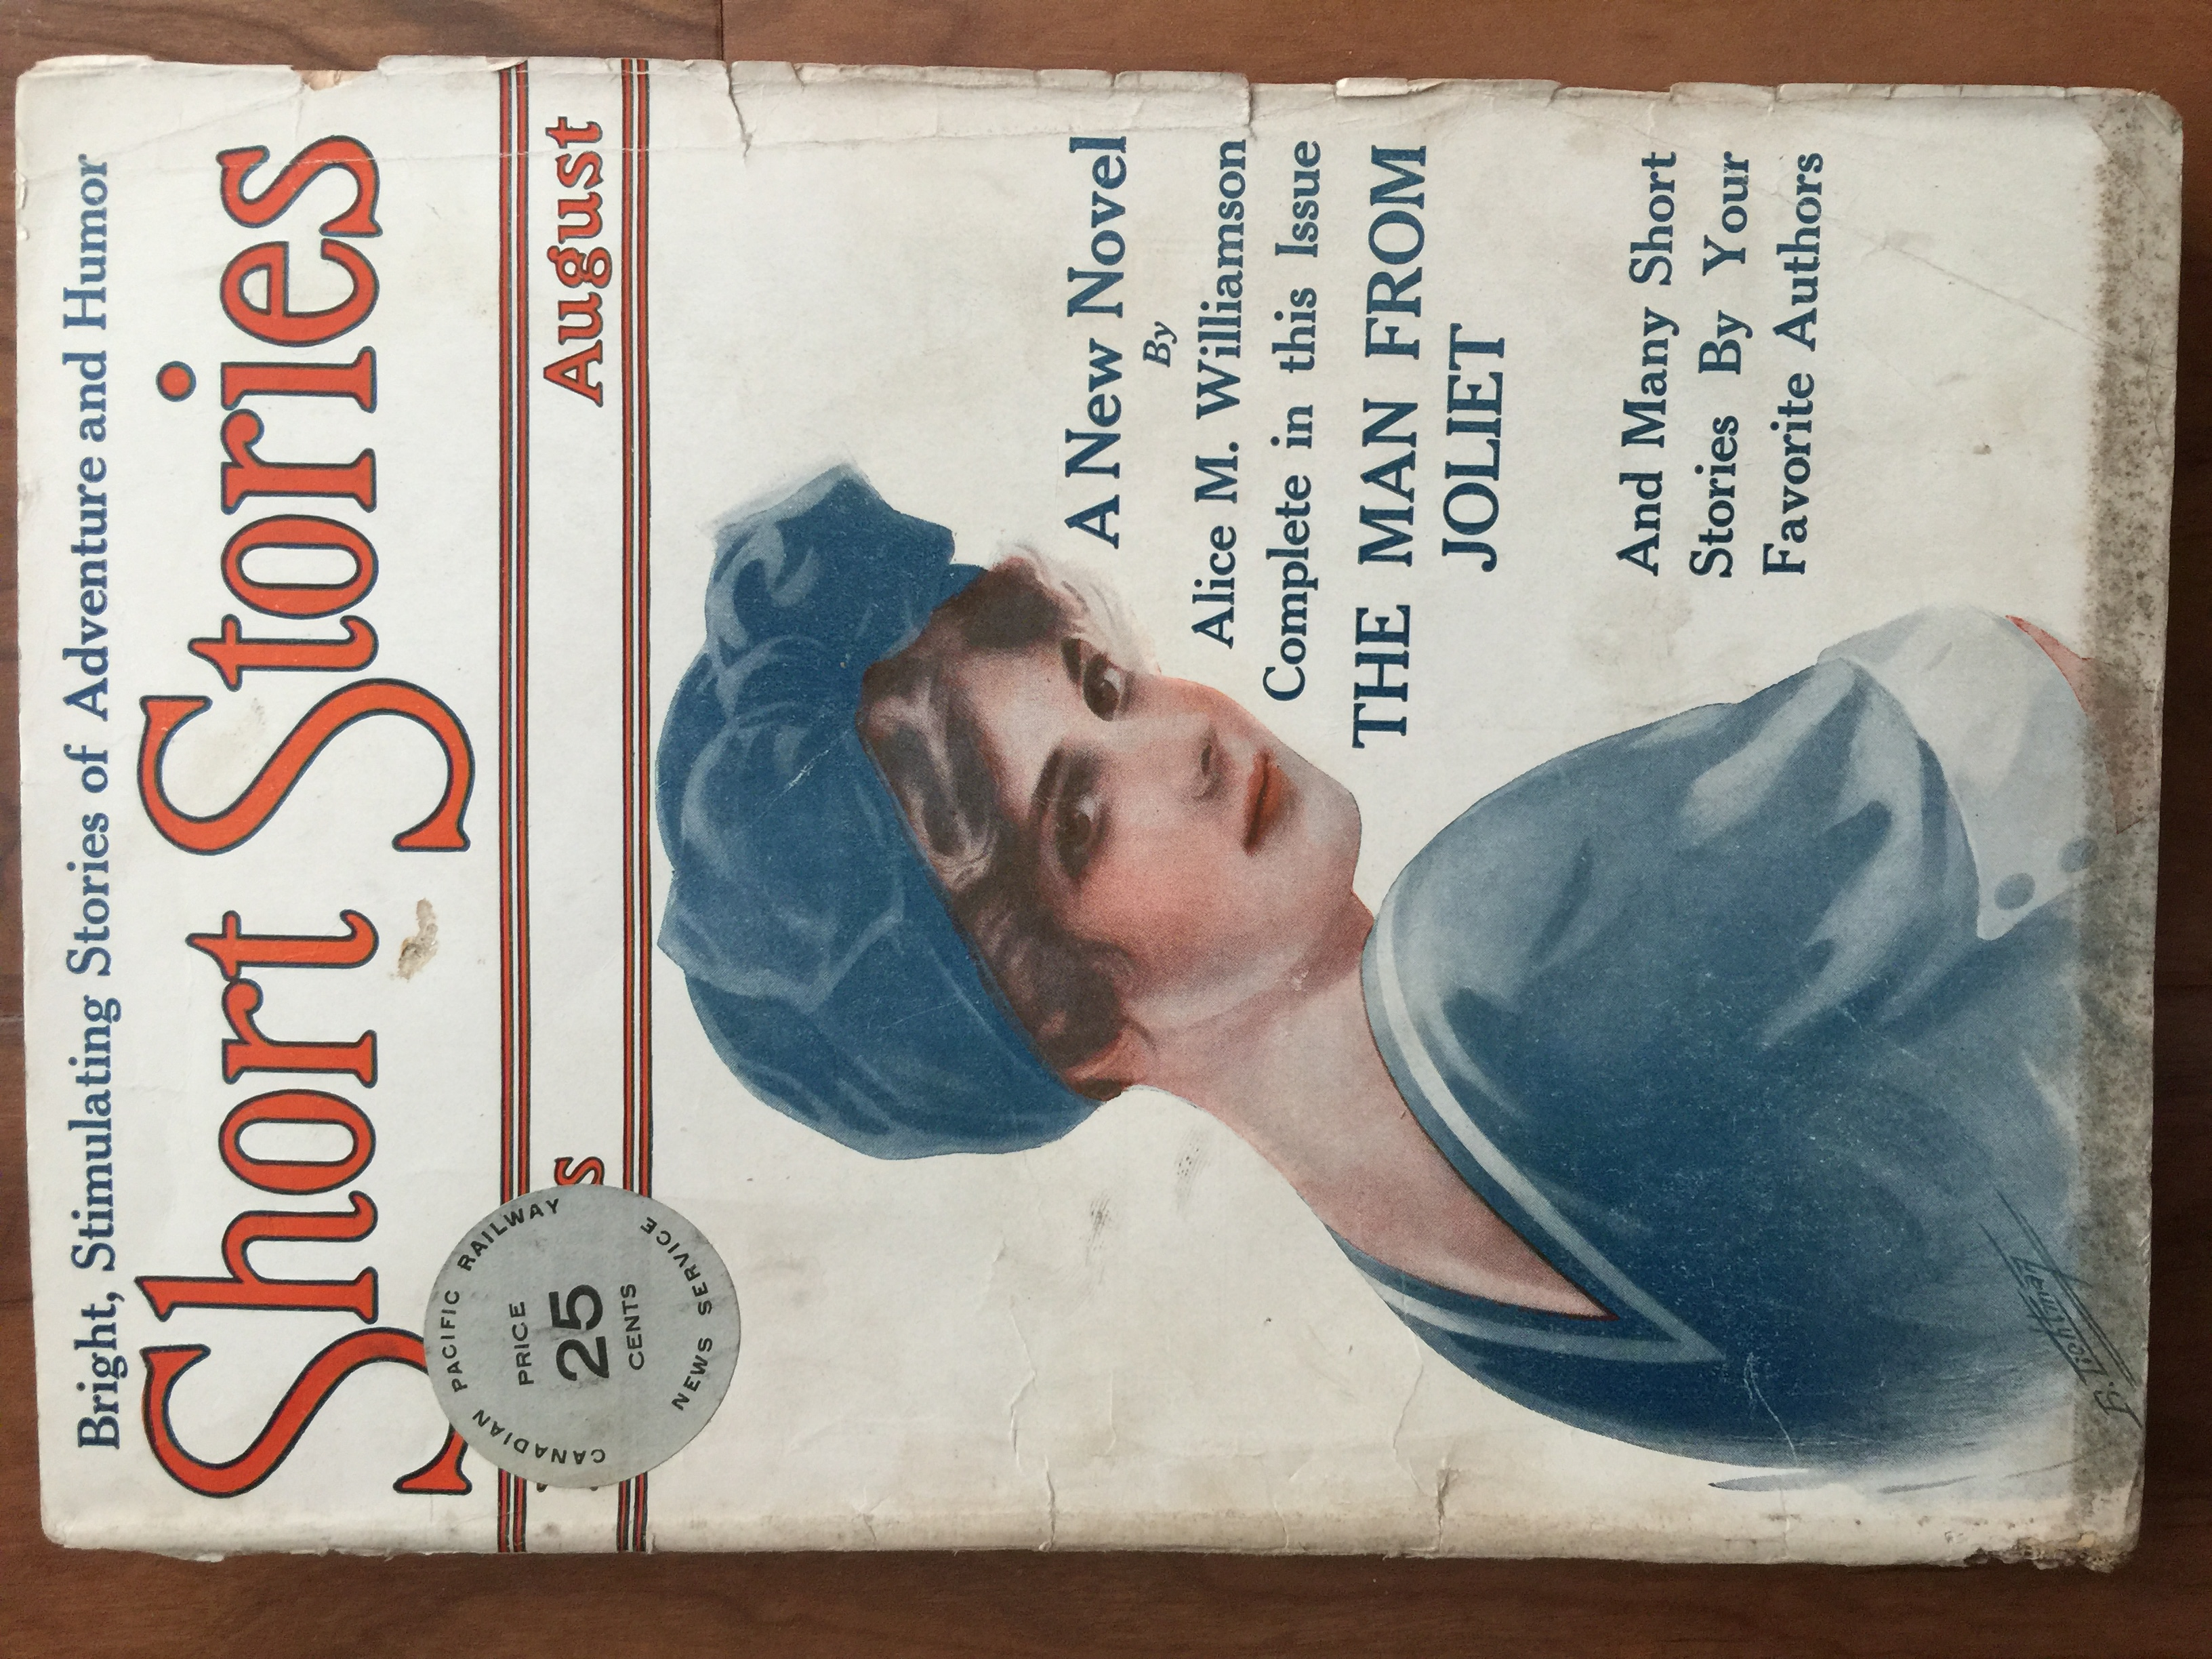 Short Stories August 1915 issue, continuing the transformation into full fledged pulp under Harry S. Maule's editorship